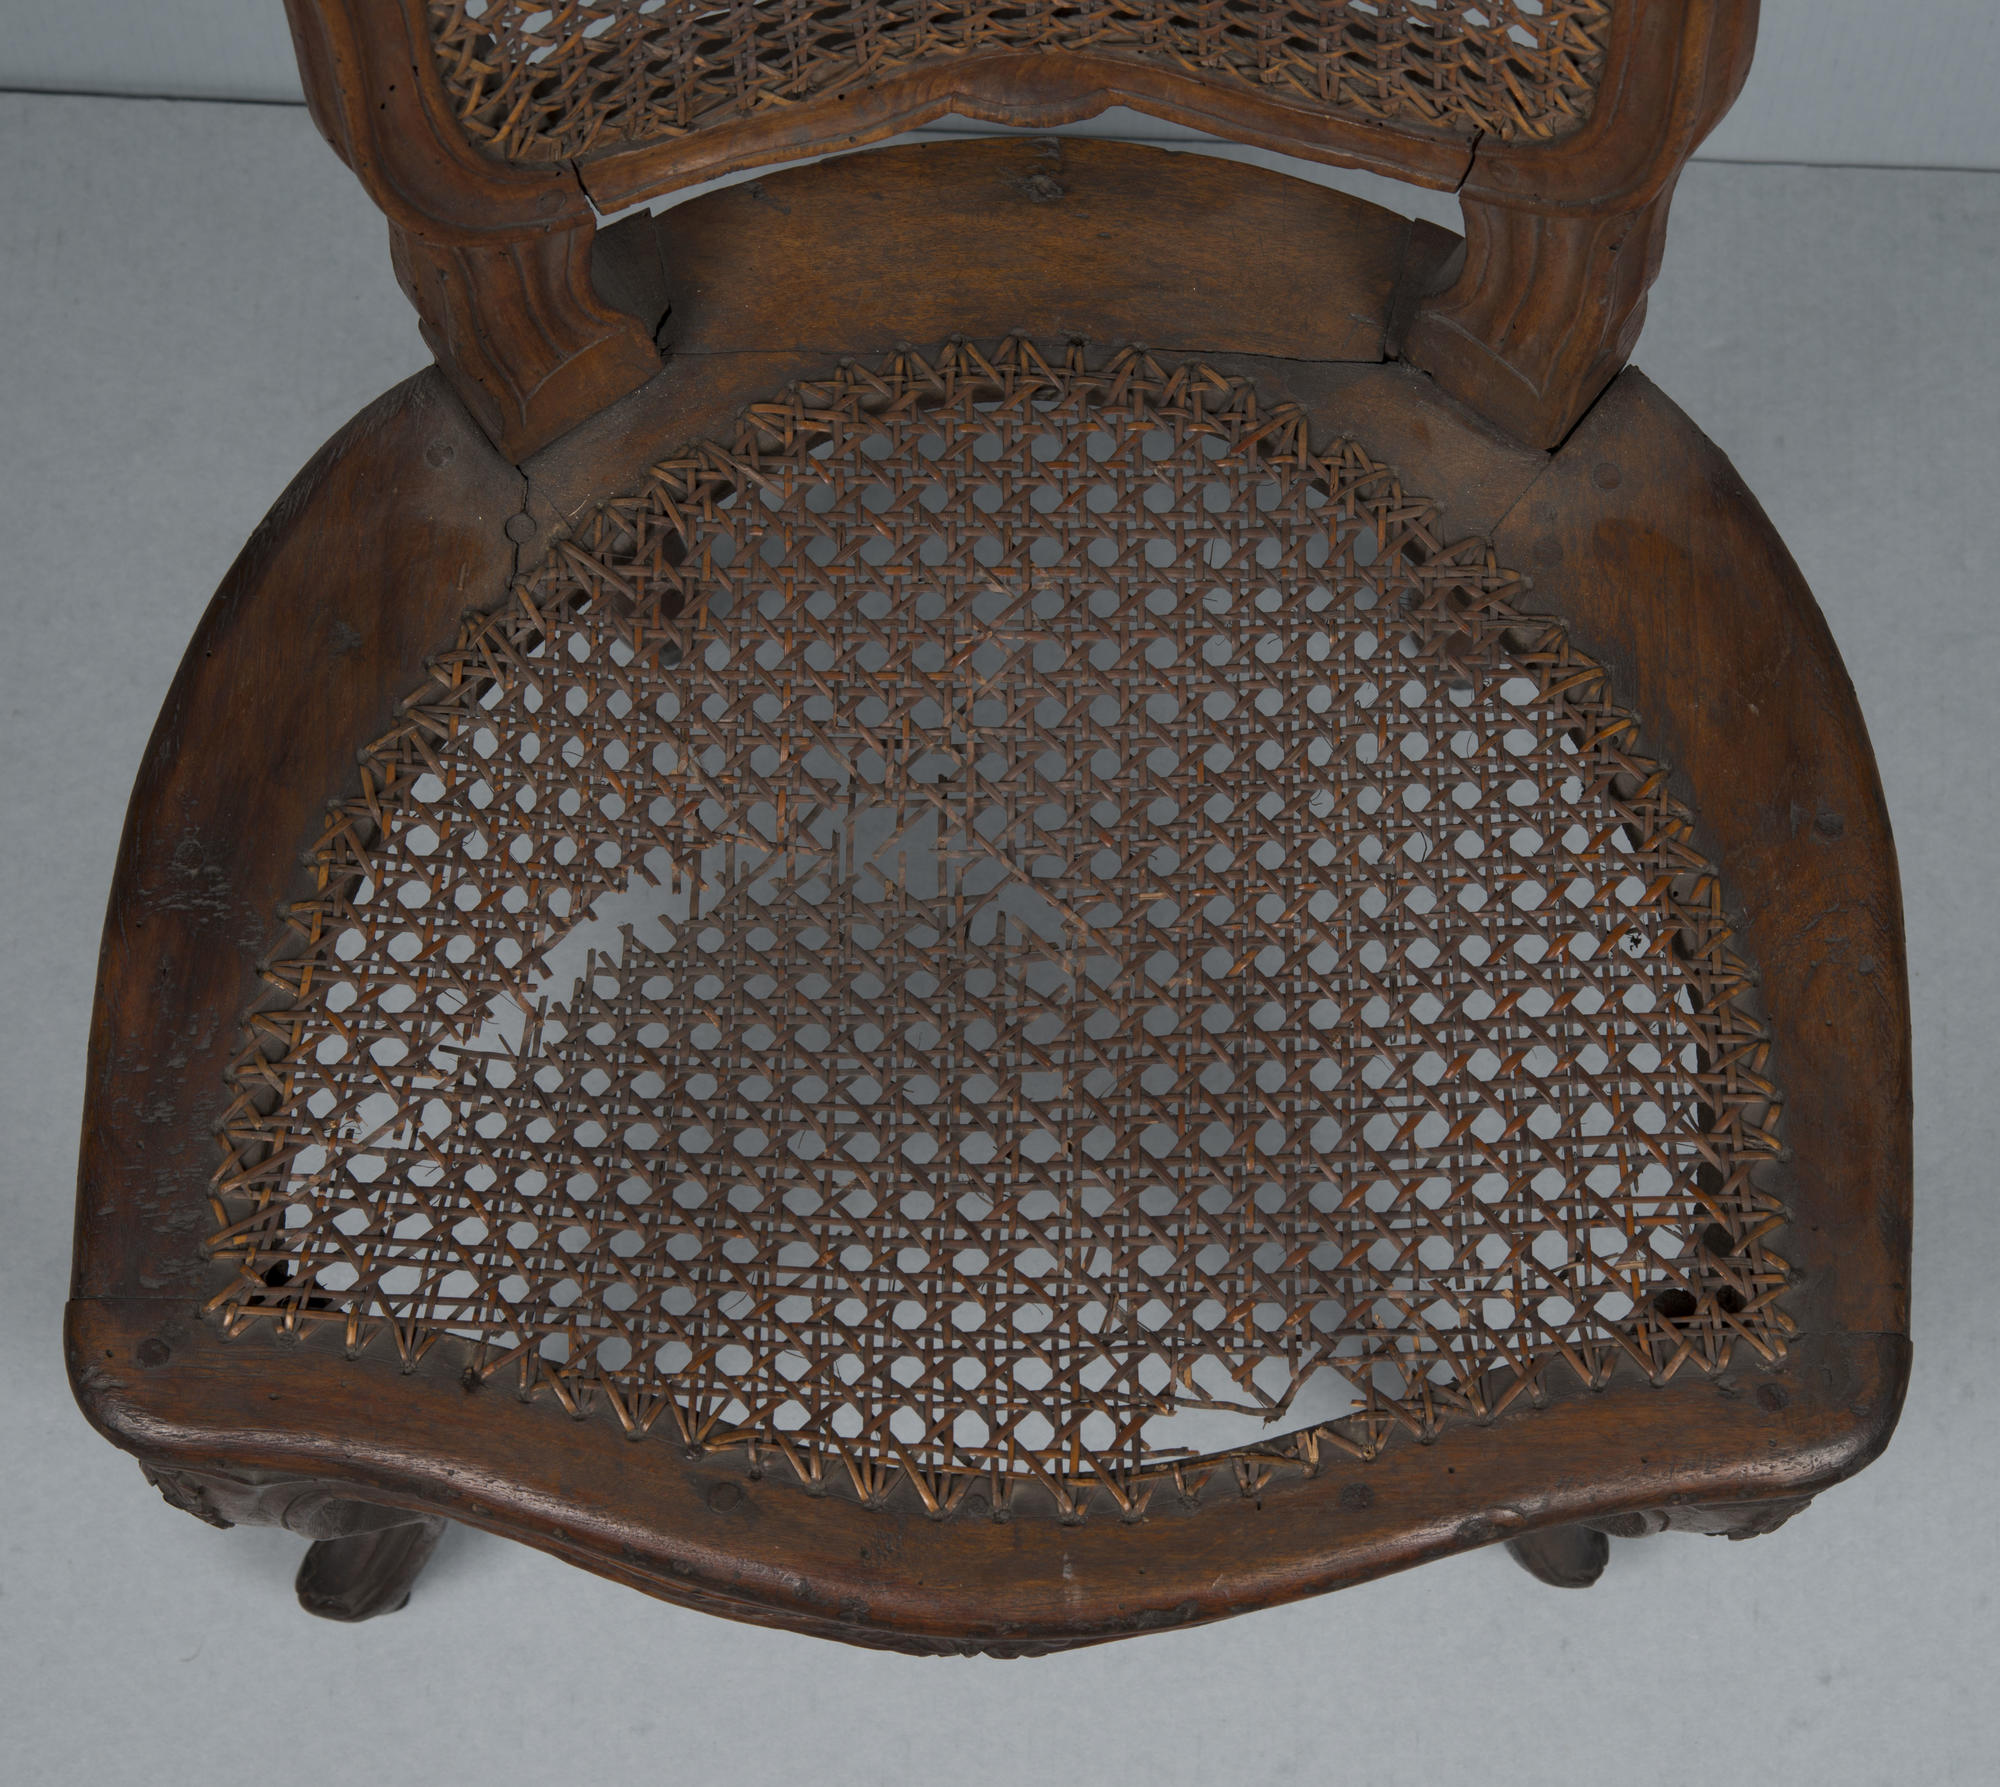 Italian, Parma, Side Chair, 2nd half of the 18th century, before treatment